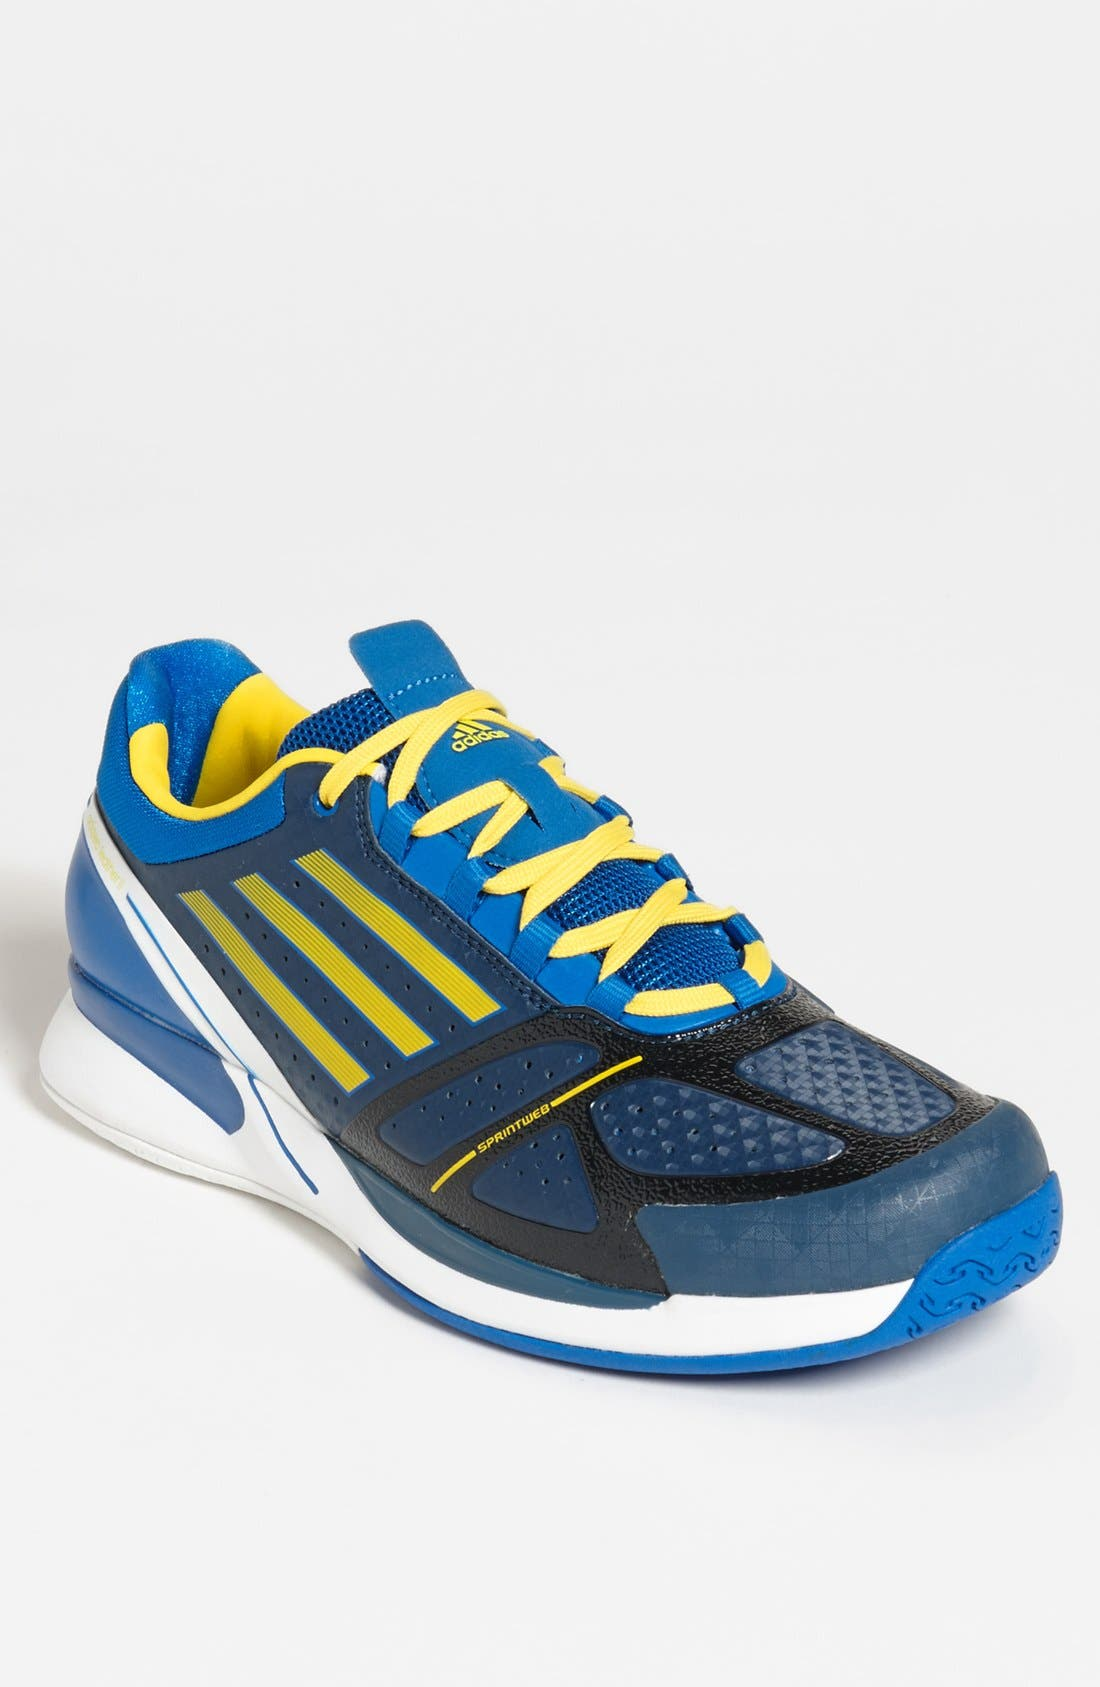 Alternate Image 1 Selected - adidas 'adizero Feather II' Tennis Shoe (Men)